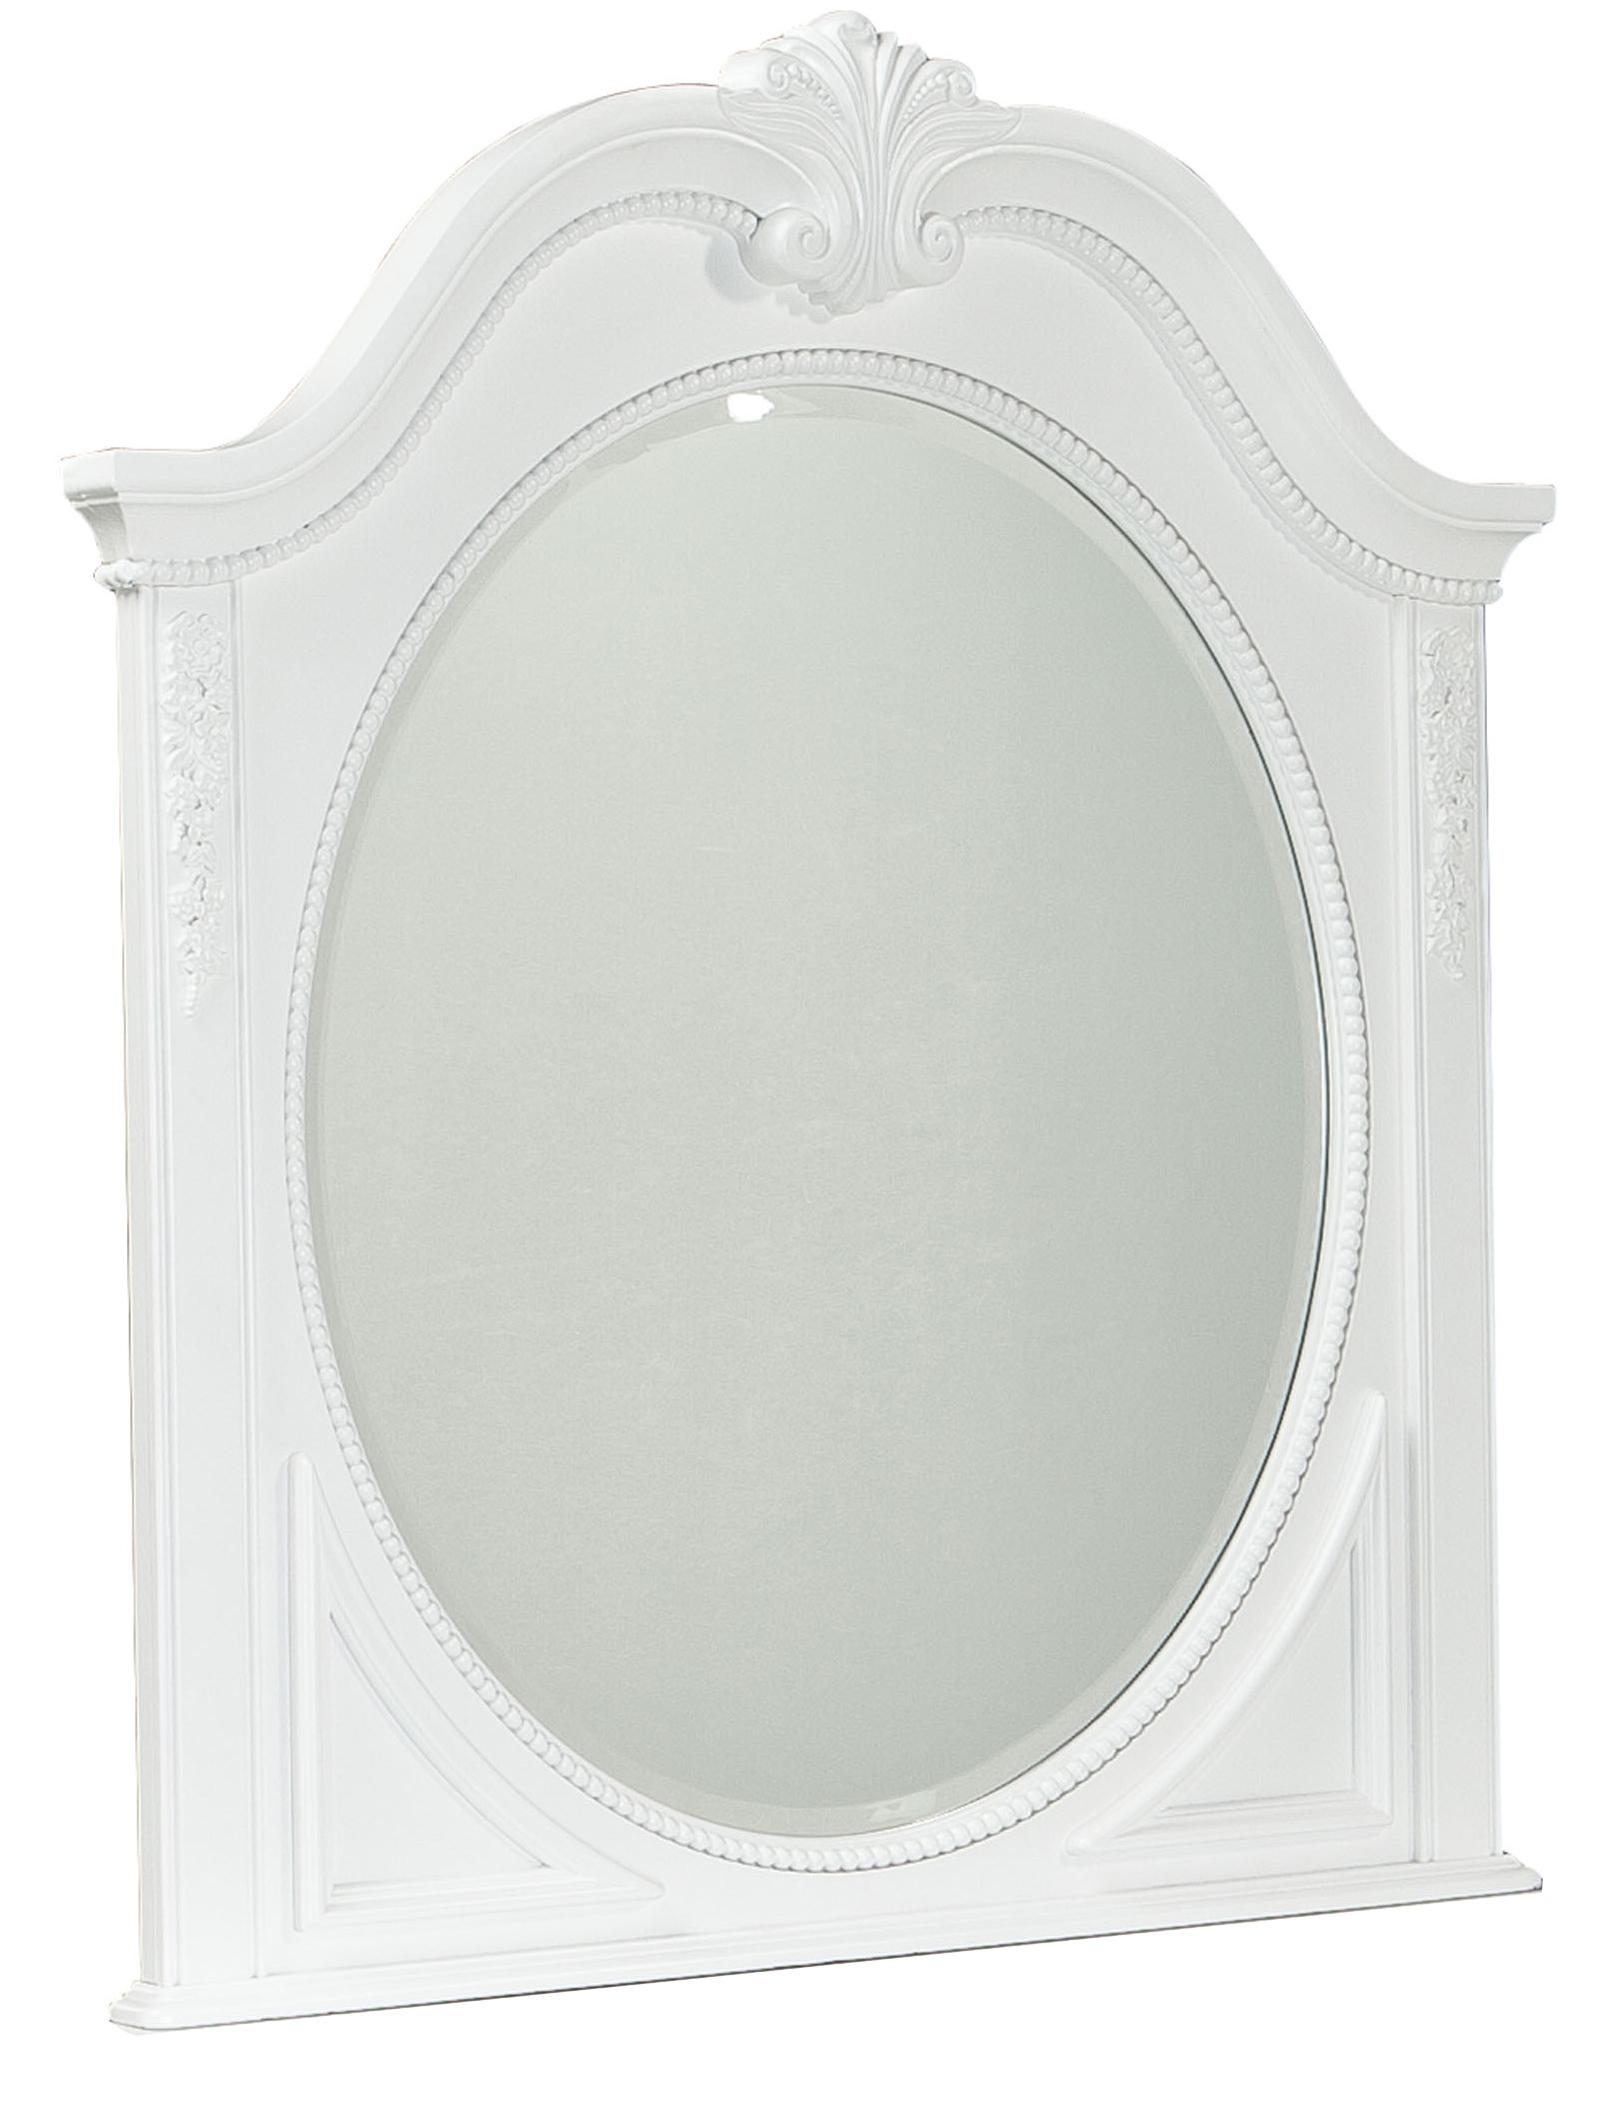 Standard Furniture Jessica Mirror - Item Number: 94208